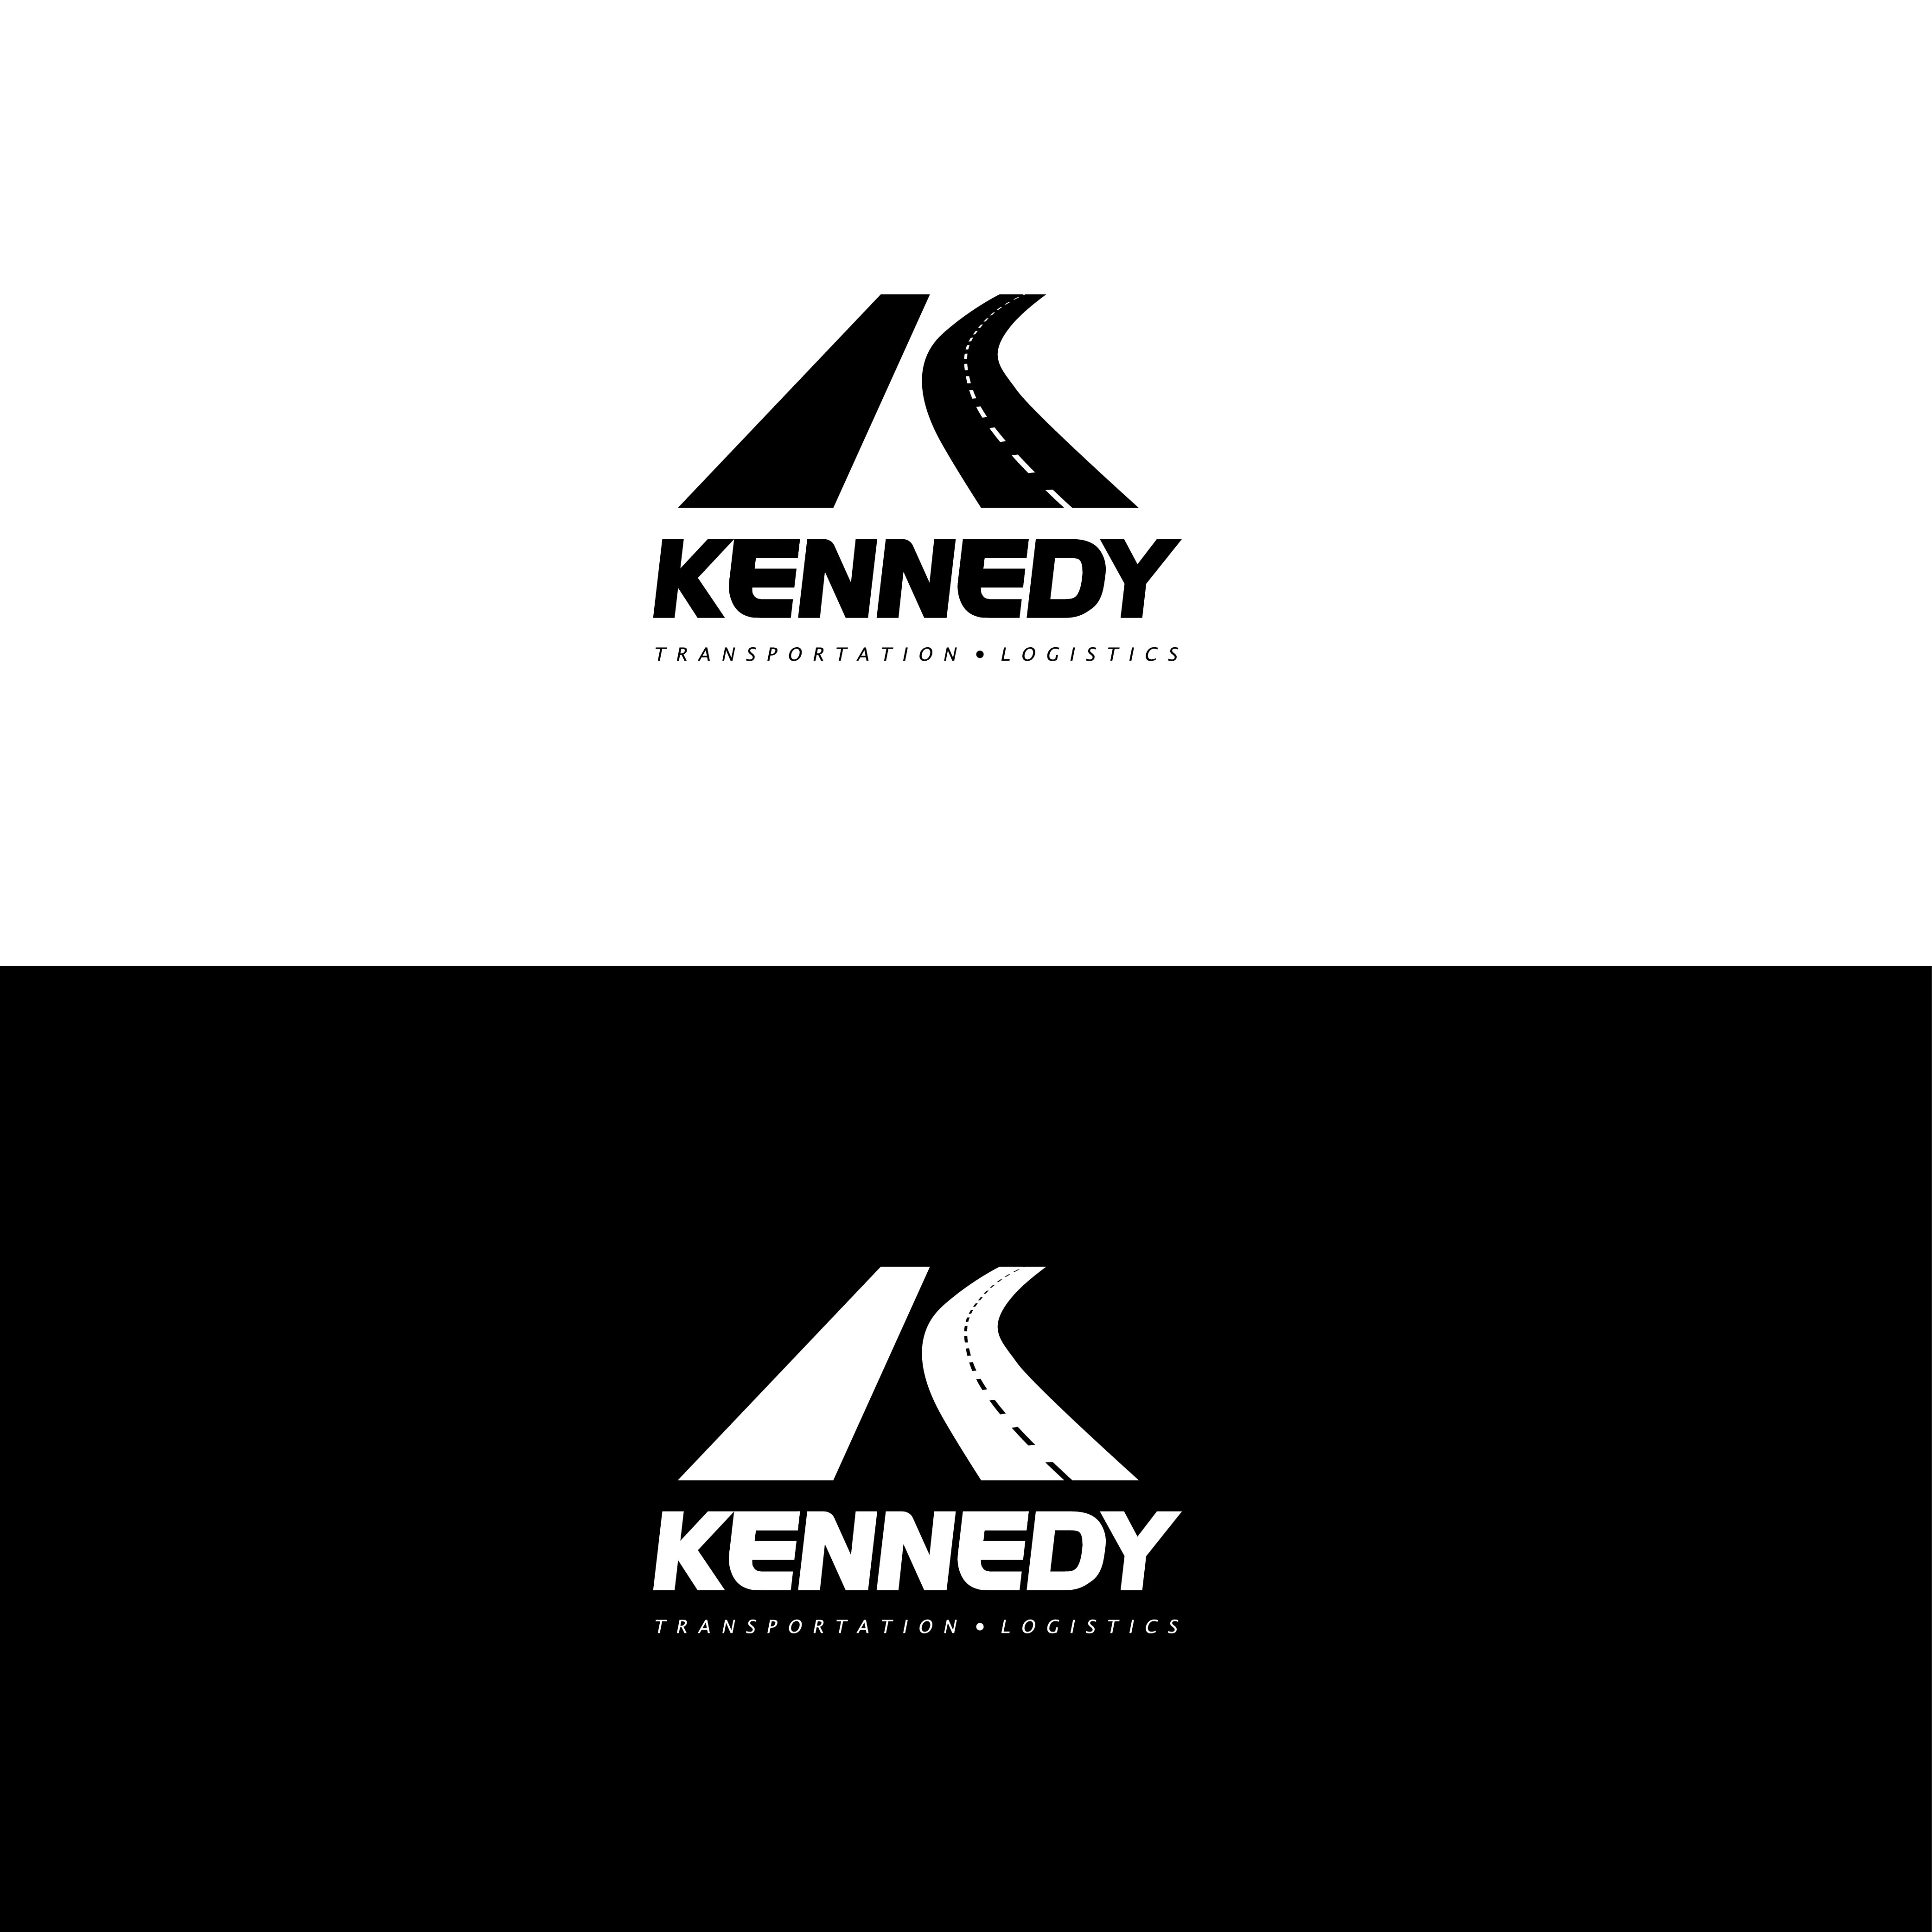 Design an eye catching logo for Kennedy Transportation